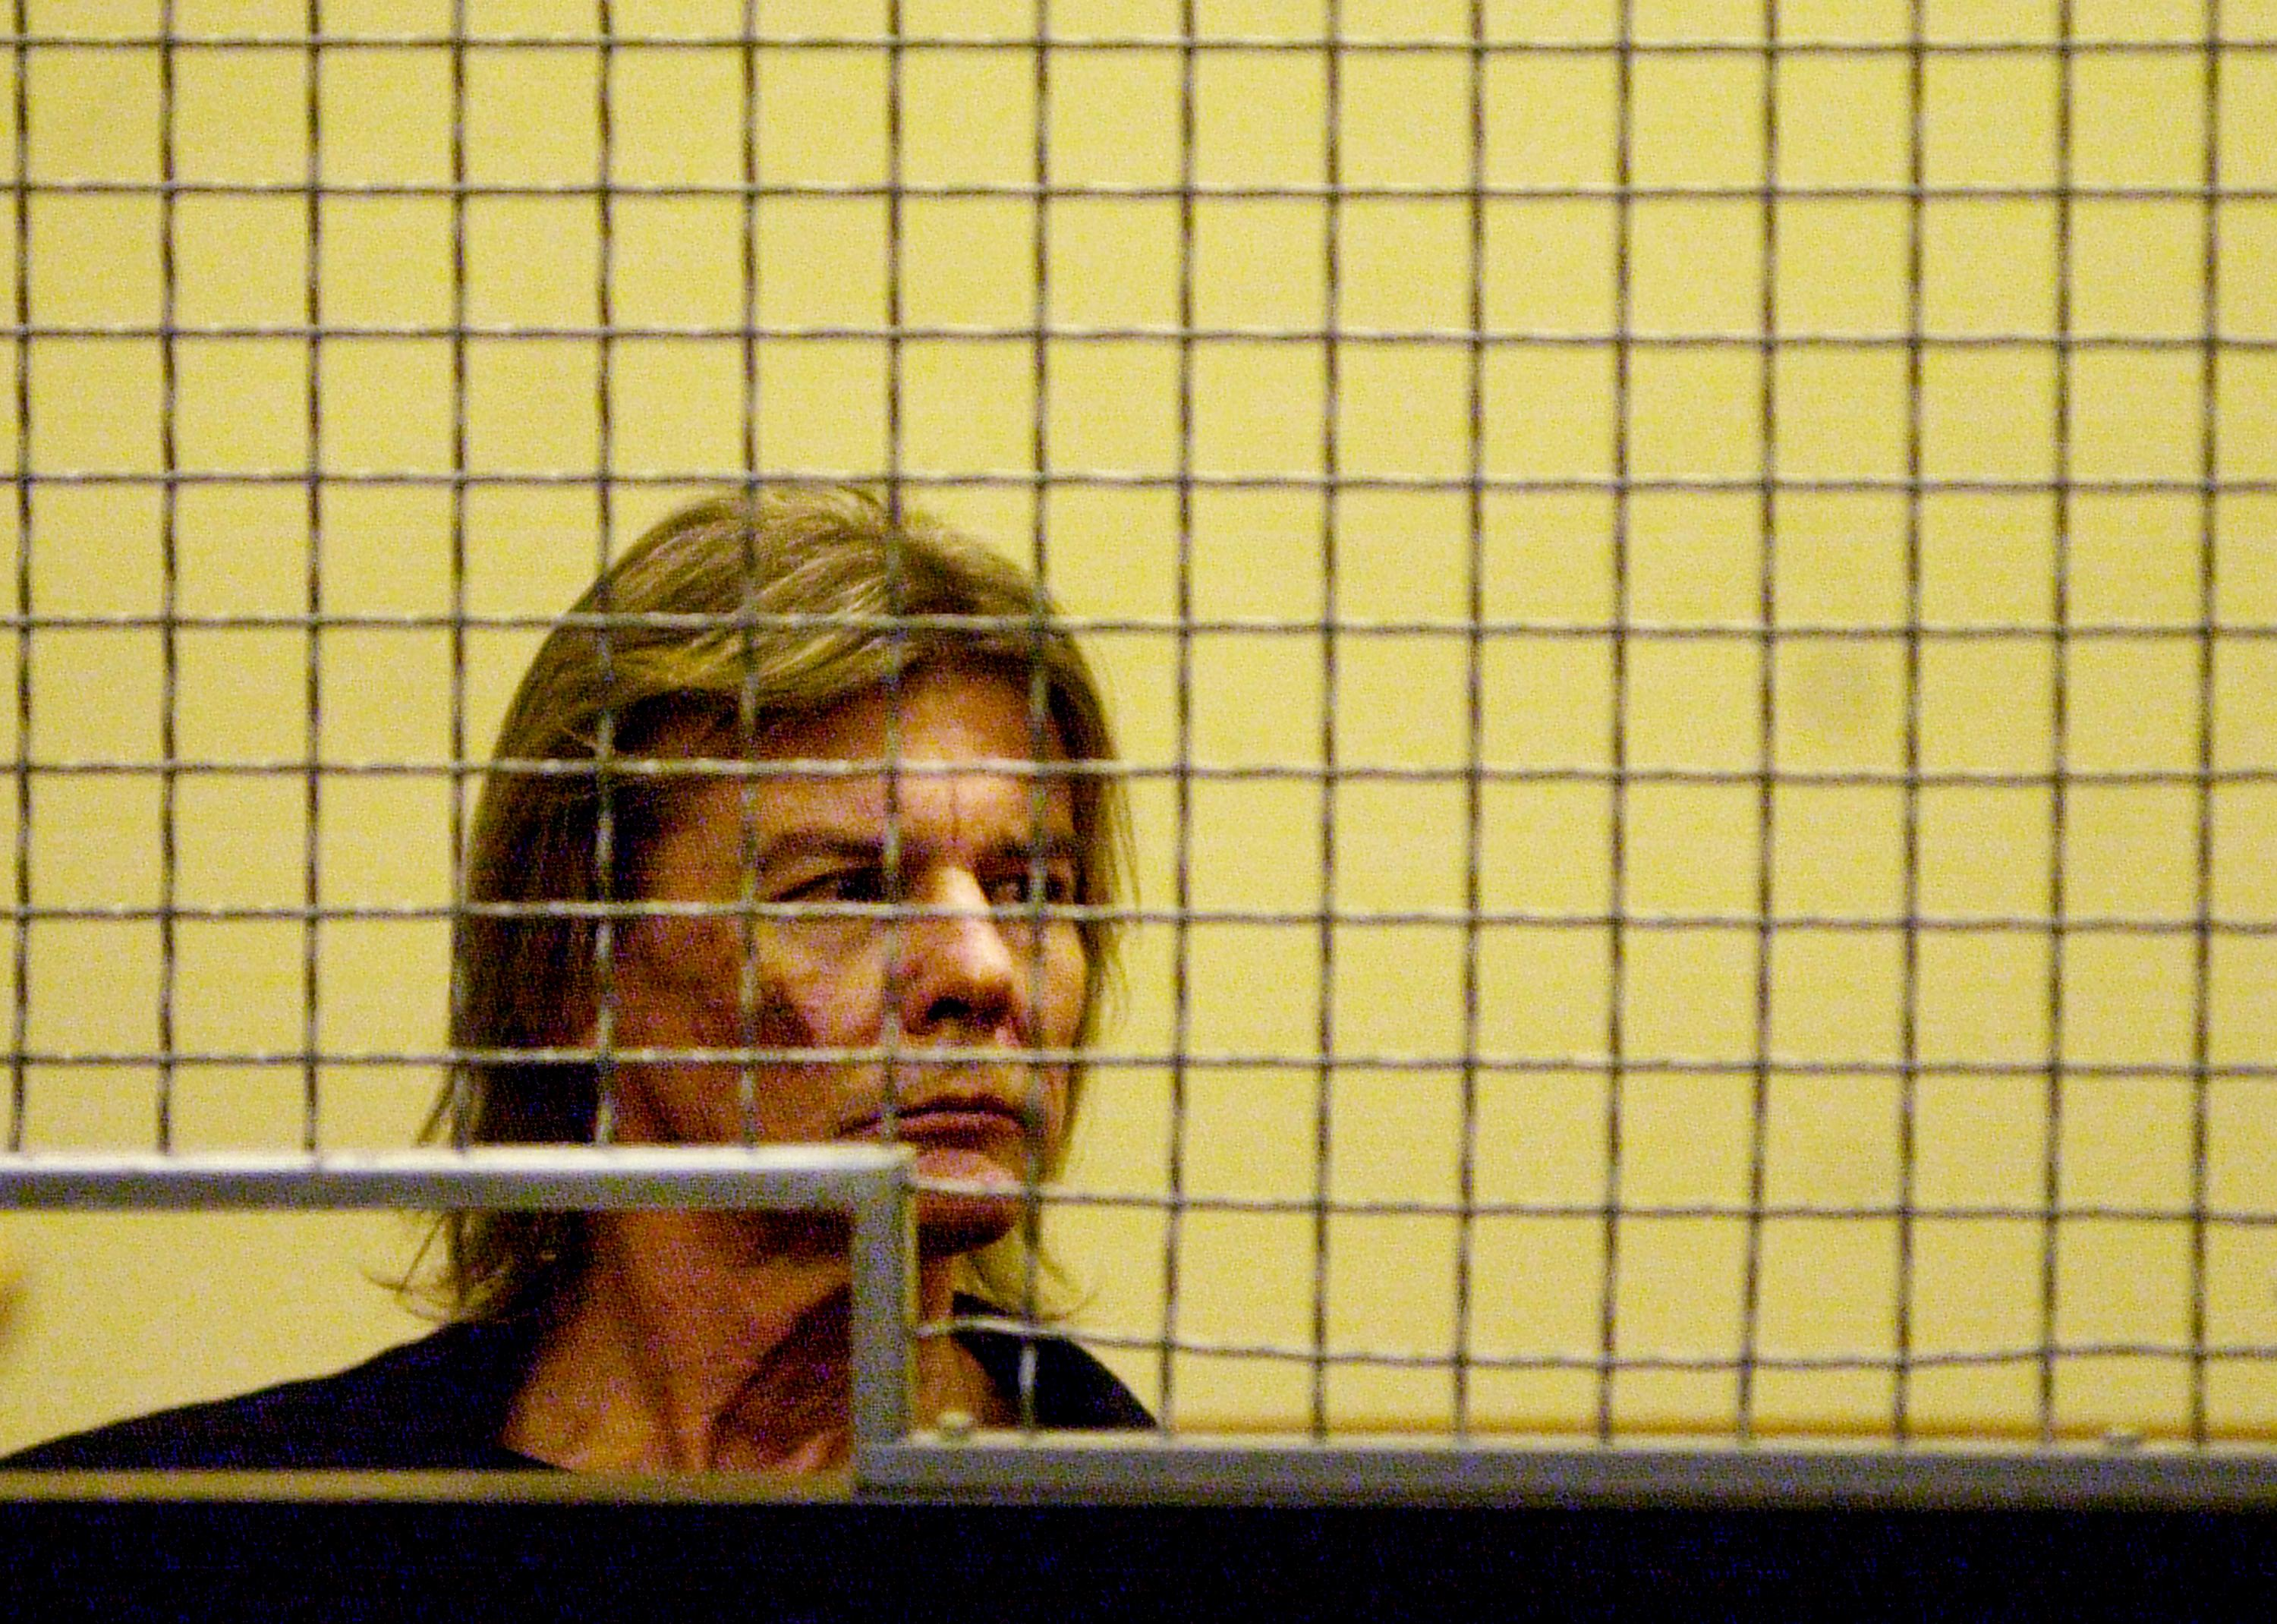 ***EXCLUSIVE*** Actor Jan-Michael Vincent is taken into custody, pending a $5,000.00 bail at his probation violation hearing in Laguna Niguel, CA, July 11, 2000. The 55-year-old former star of the 1980's television show 'Airwolf' was arrested January 19 in a Santa Monica, CA park in the latest of several alcohol-related incident (Getty Images)